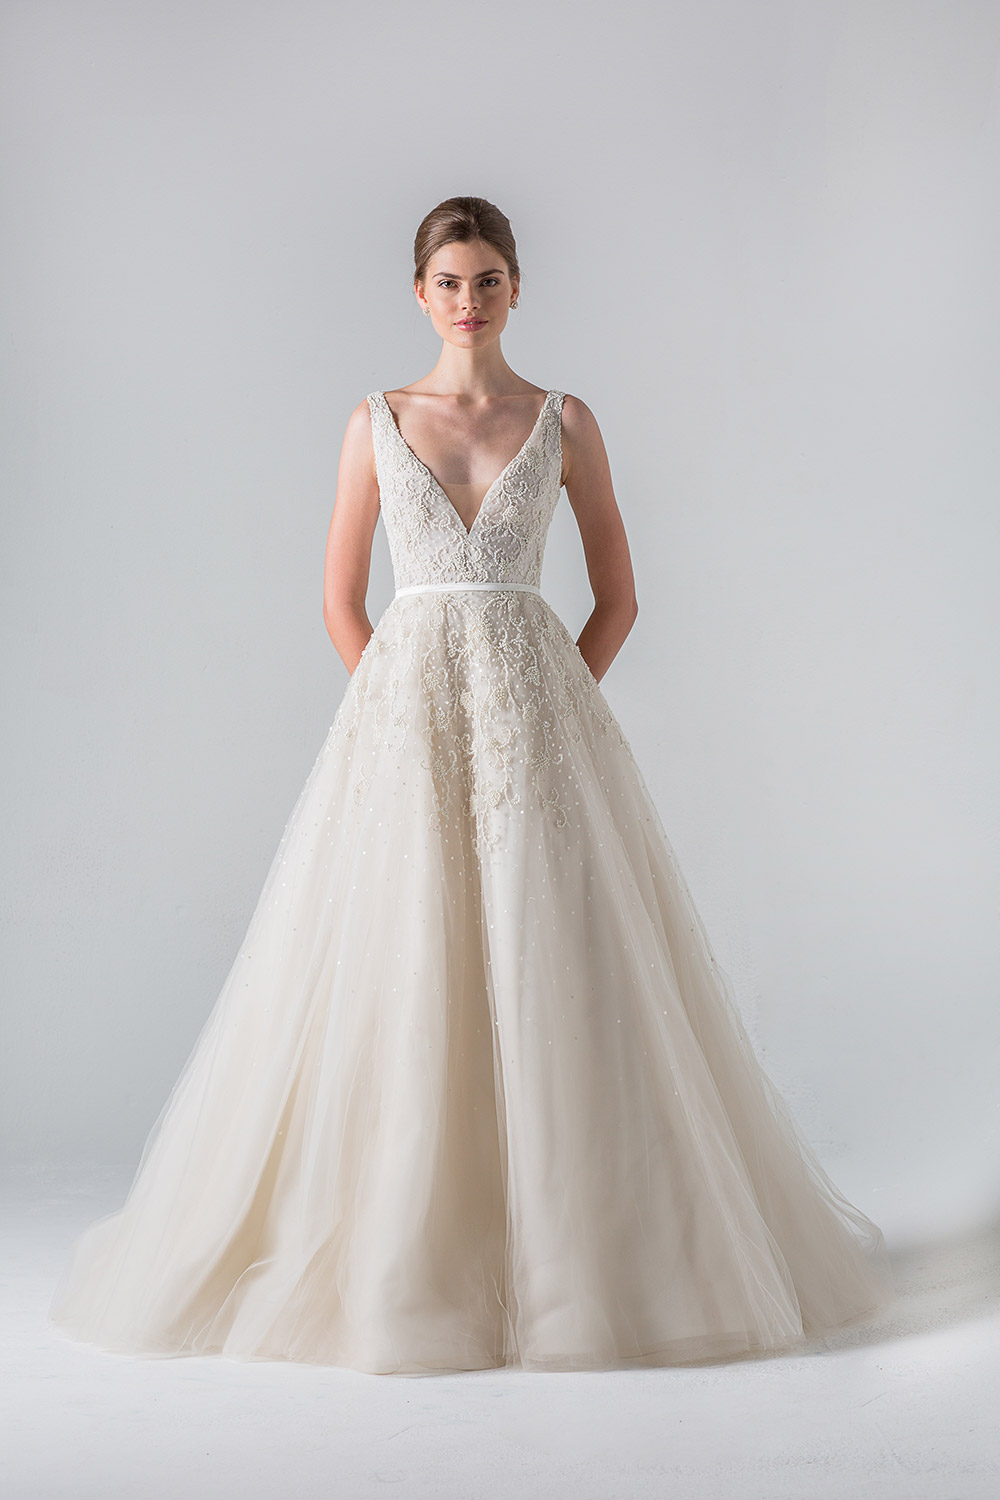 Versailles - Anne Barge Couture Spring 2016 Collection. www.theweddingnotebook.com